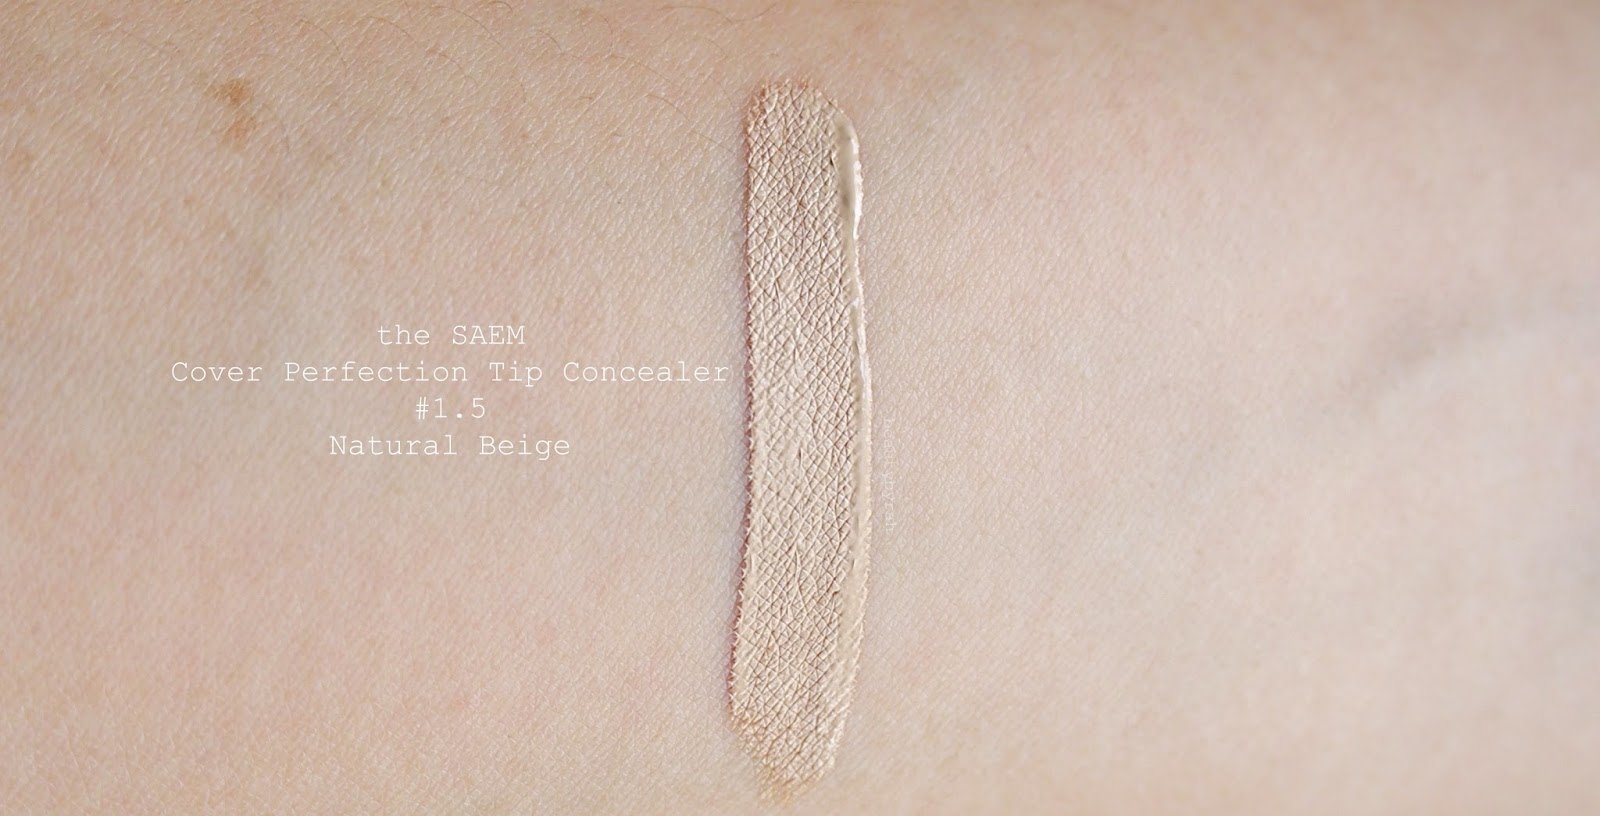 the SAEM Cover Perfection Tip Concealer in 1.5 review